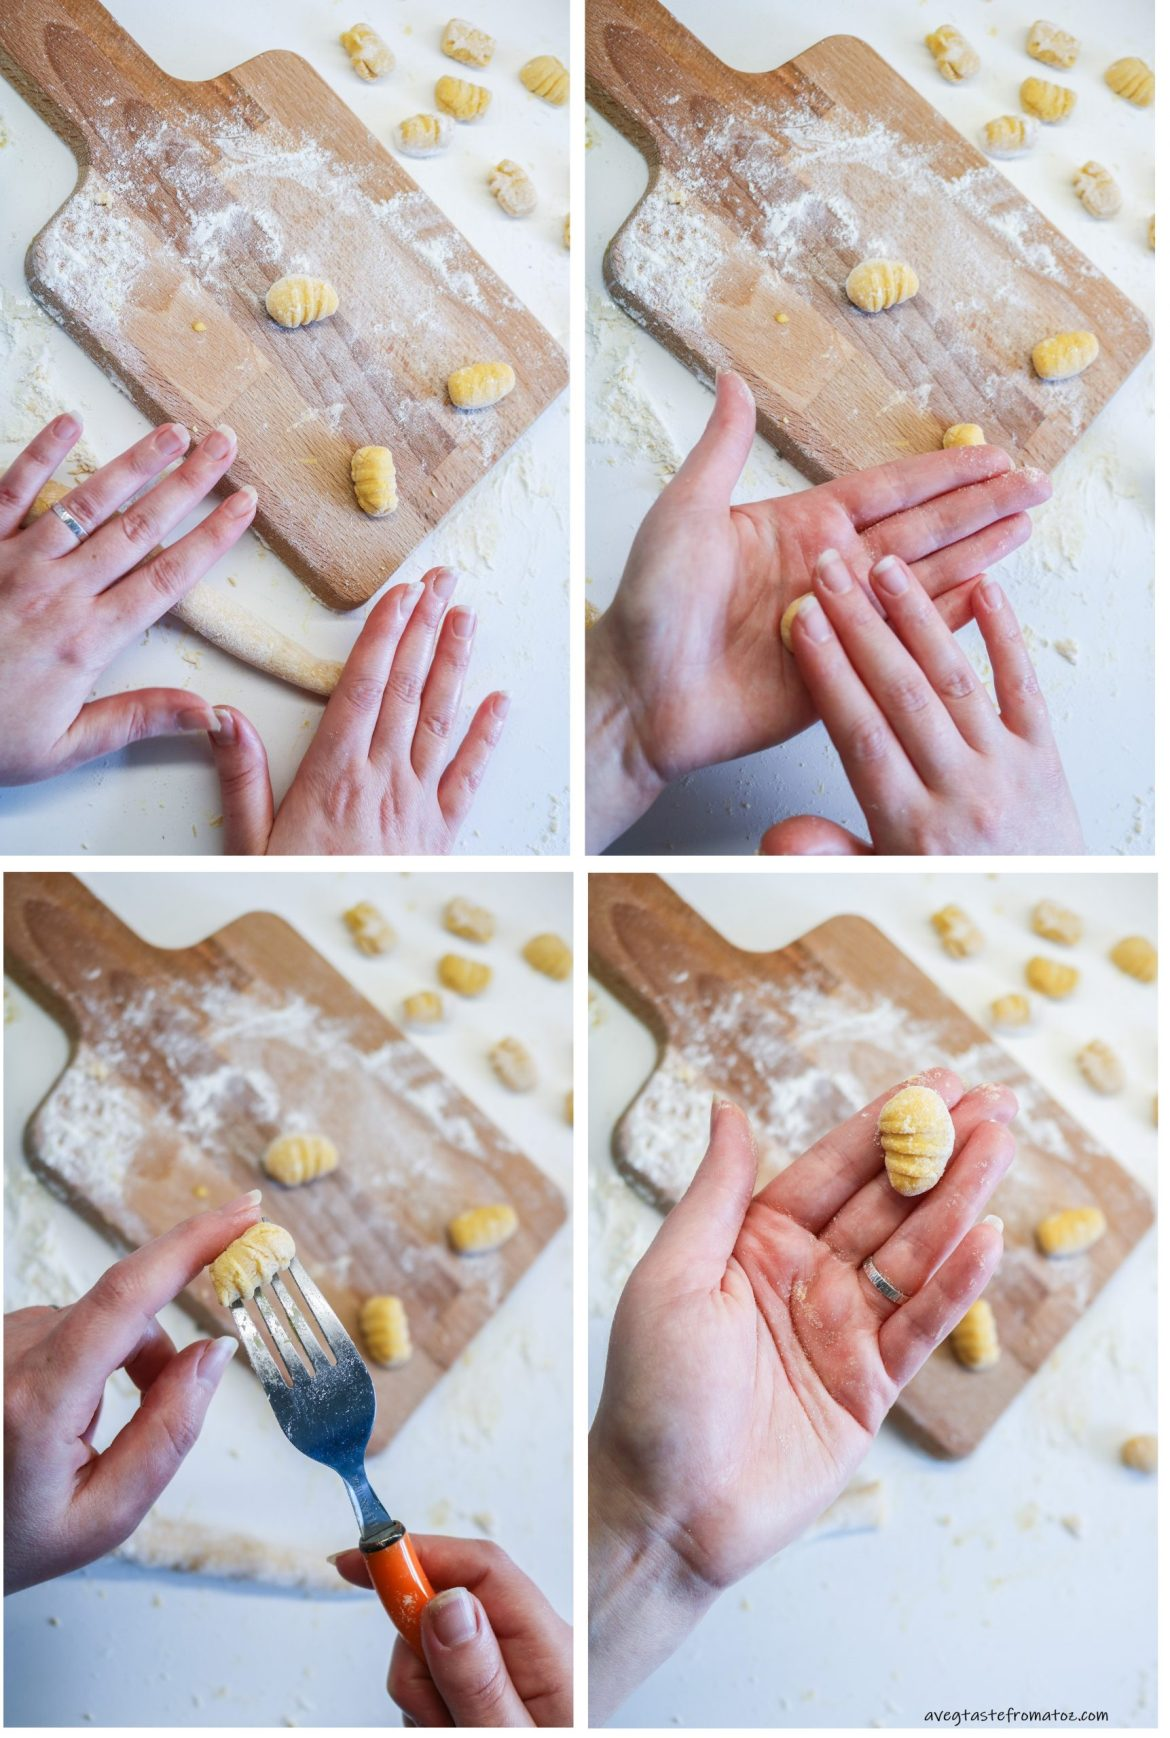 steps for shaping gnocchi